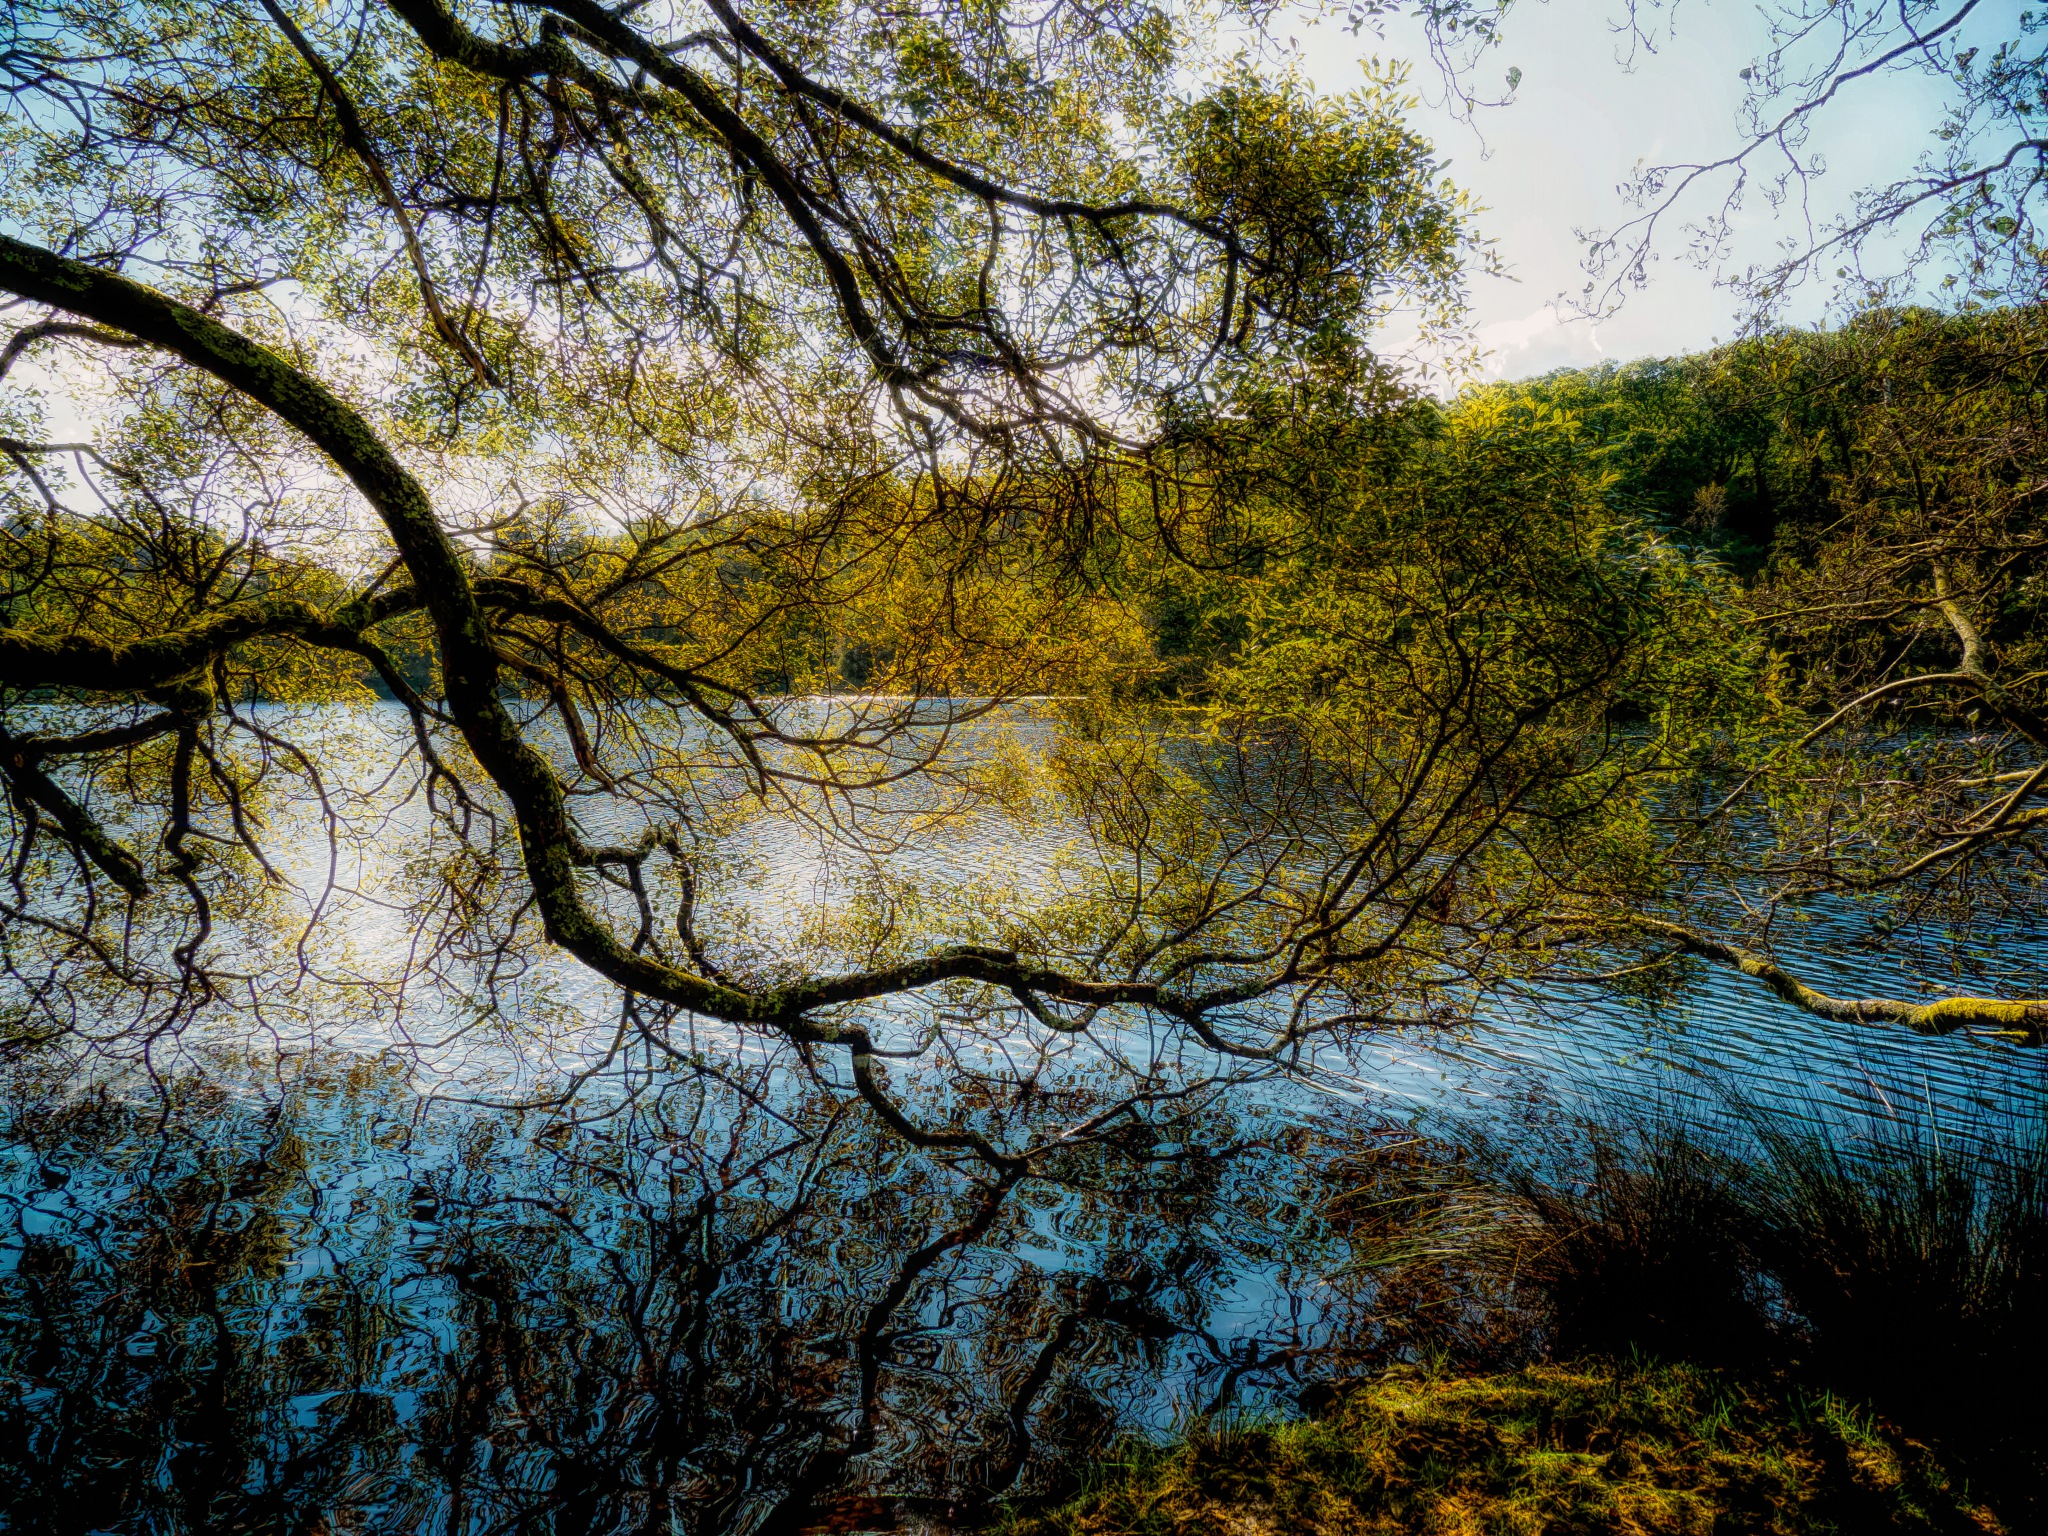 Lake through the Trees 2 by Sarah Walters